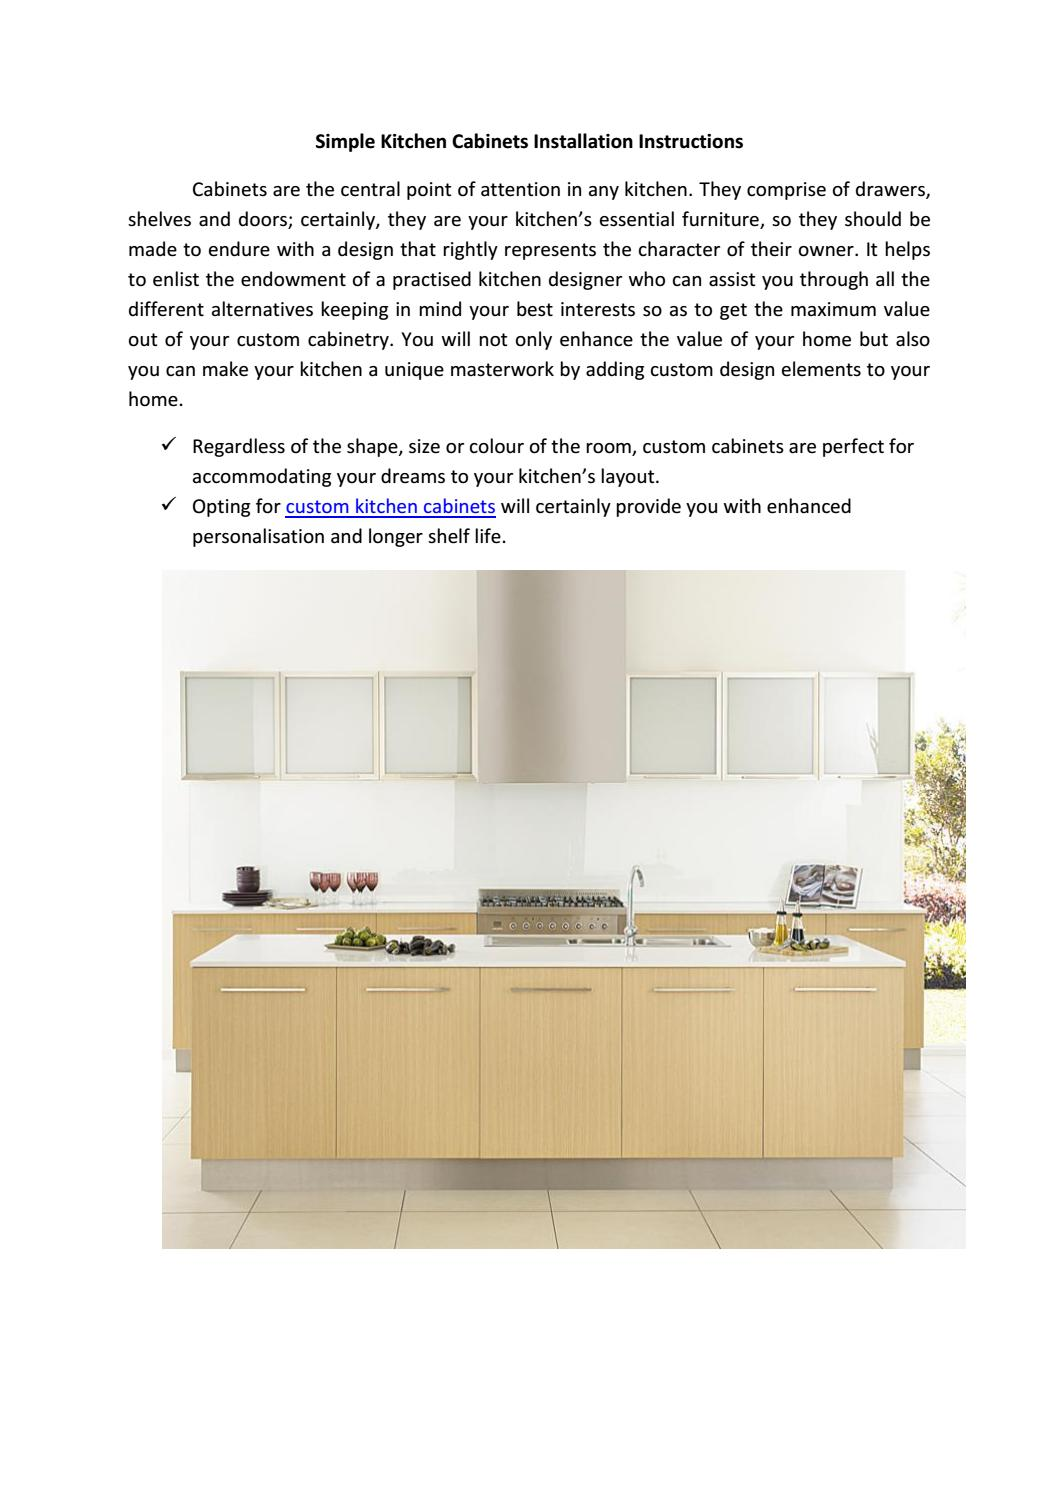 Simple Kitchen Cabinets Installation Instructions By Paradise Kitchens Issuu